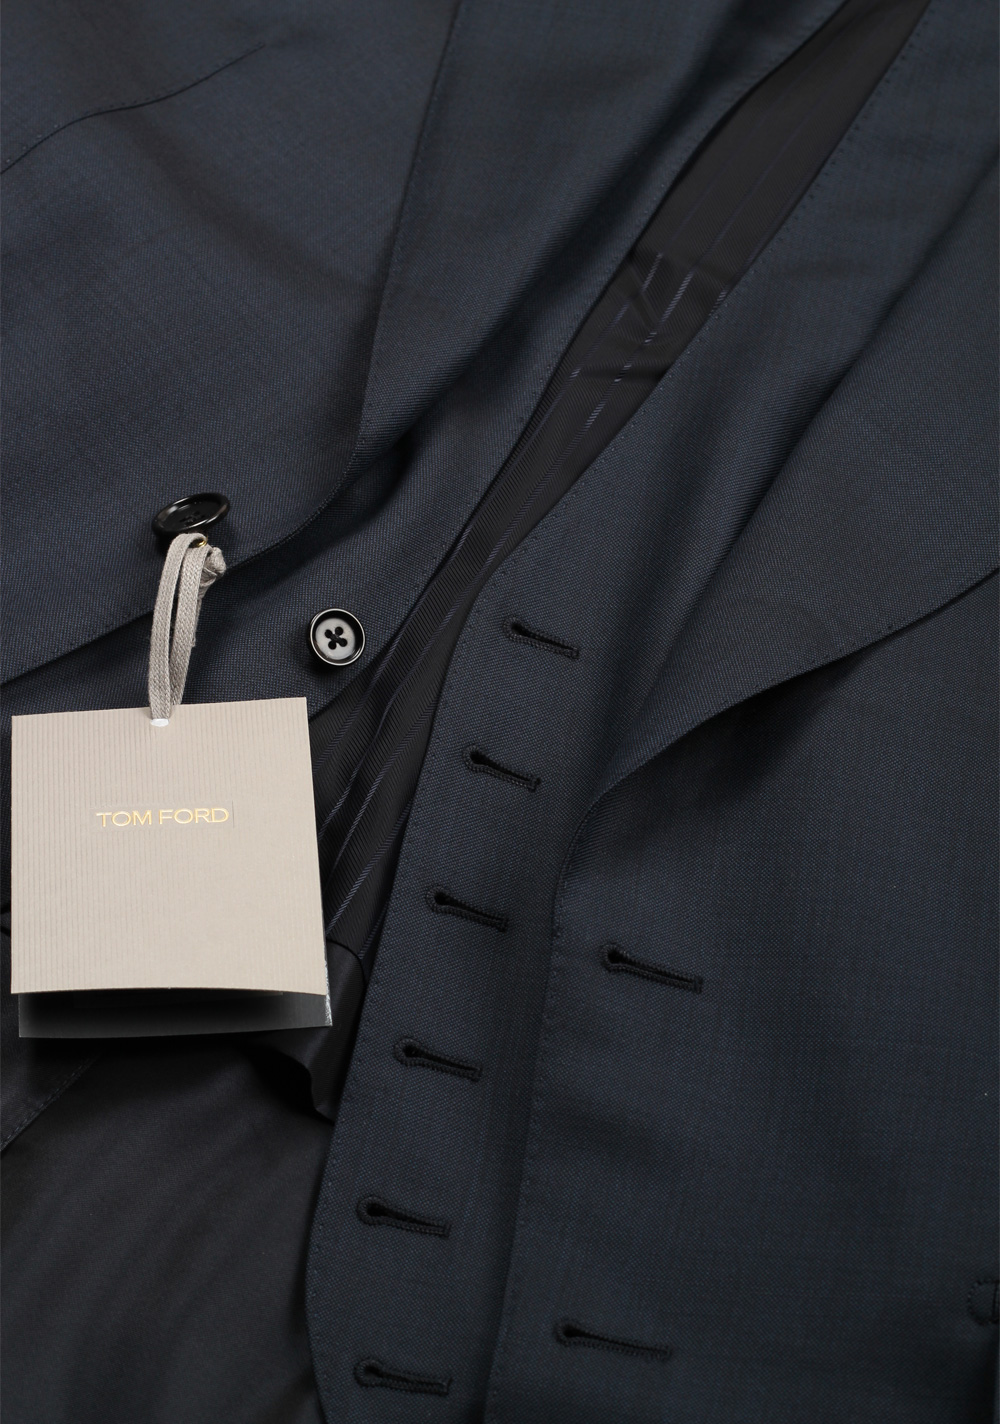 TOM FORD Shelton Blue 3 Piece Suit Size 46C / 36S U.S. | Costume Limité